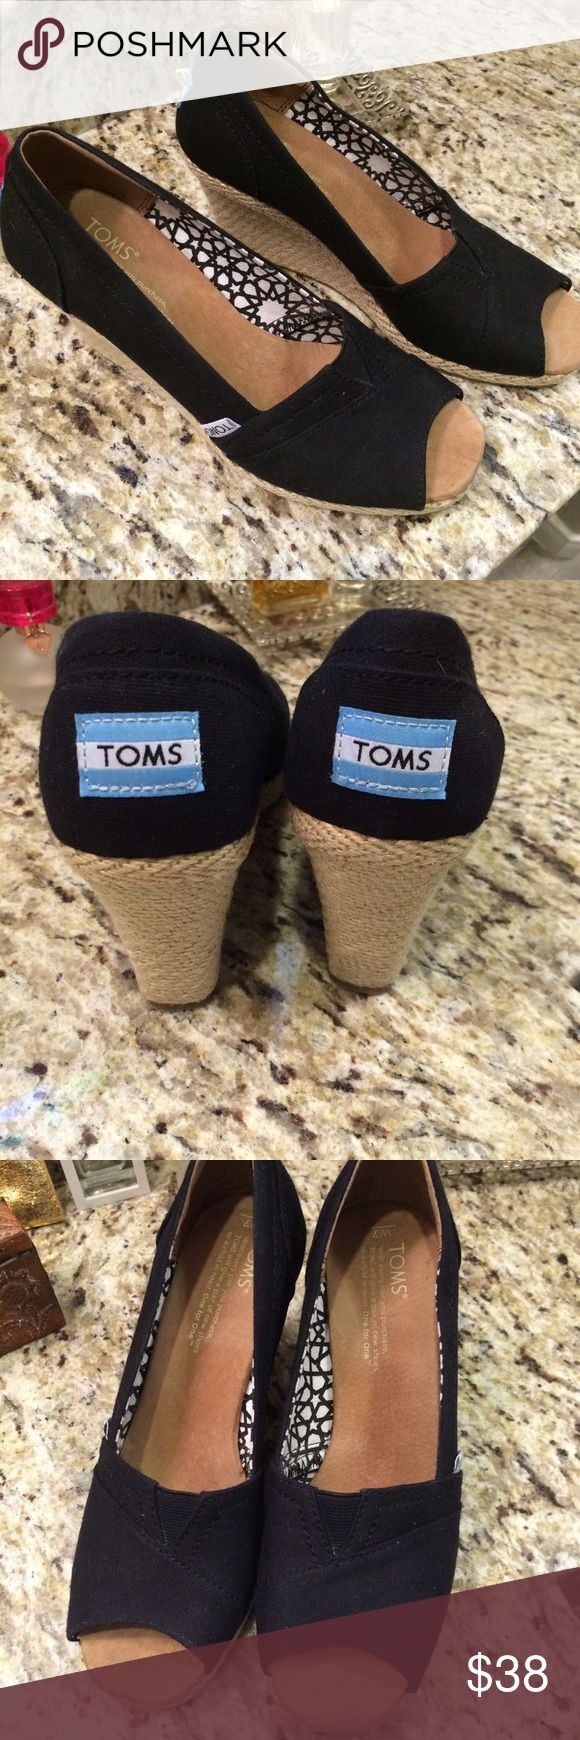 Toms Peep Toe Wedges Black Peep Toe Wedges, only worn once or twice, excellent condition. Toms Shoes Wedges